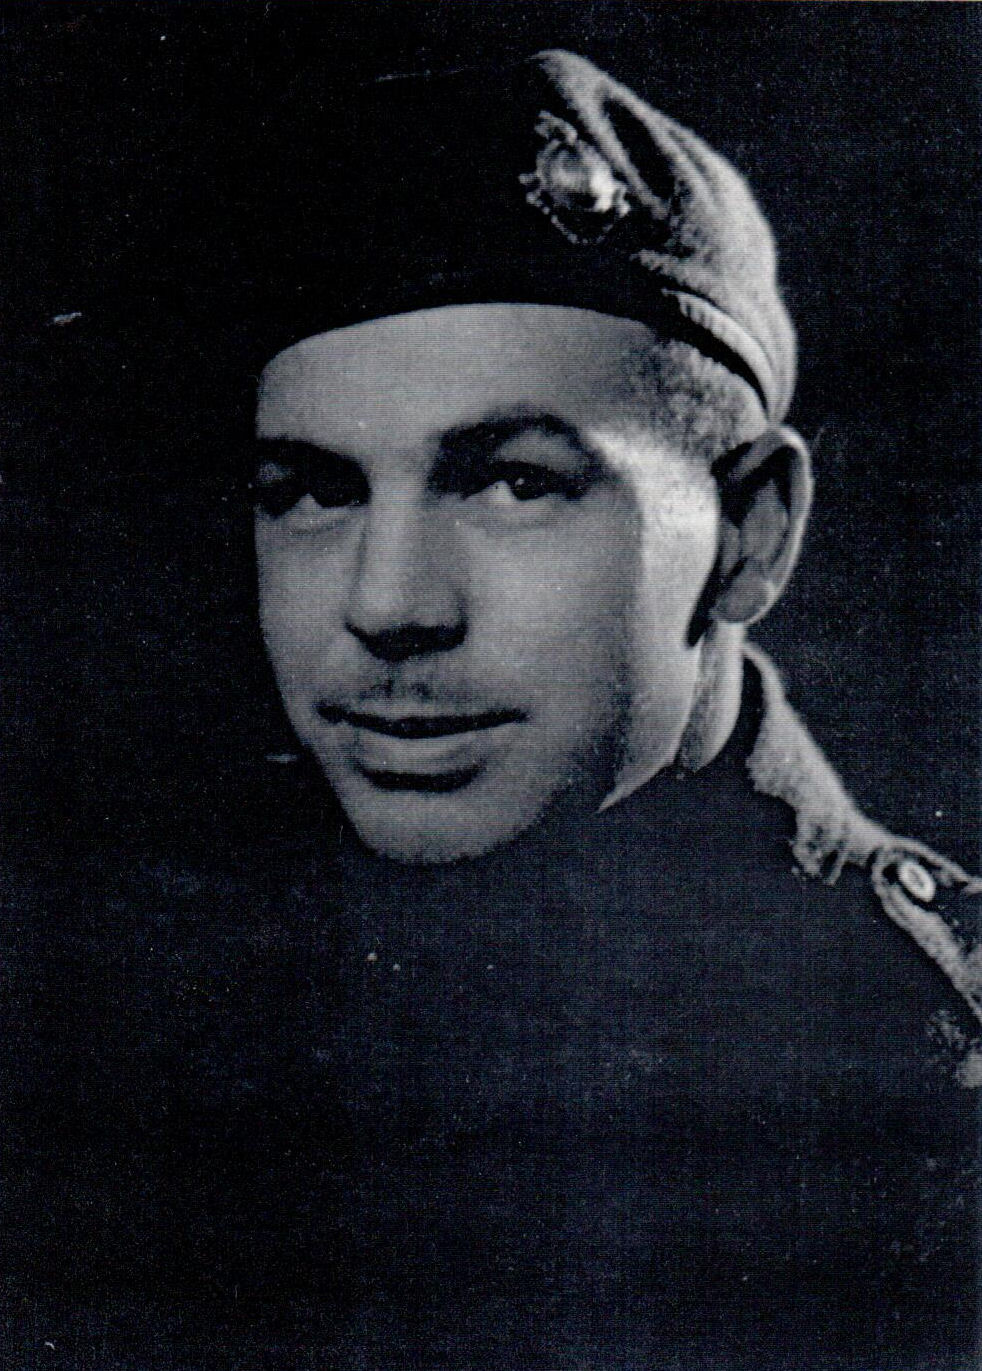 Photo of Alfred Sefton – Pte Alfred Sefton of Essex, Ontario died on December 11, 1944 in battle and buried in Jonkerbos War Cemetery, Netherlands leaving behind a wife and two children.